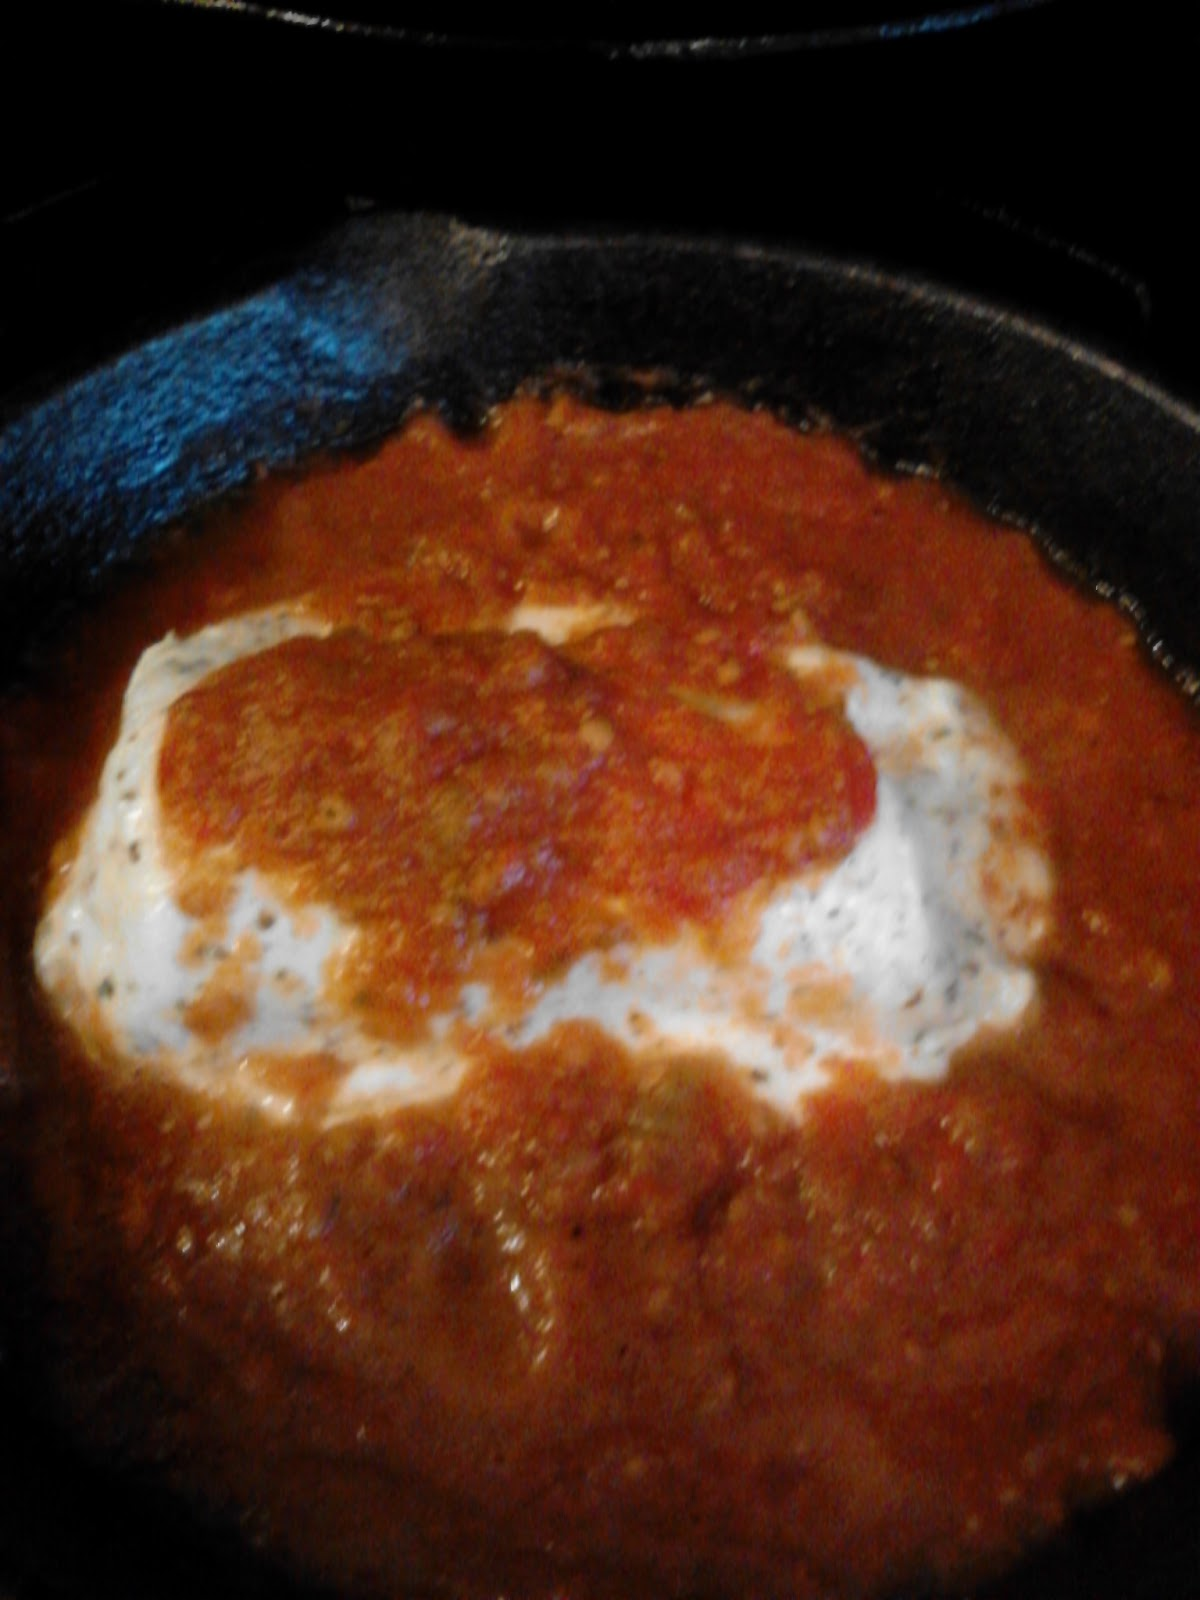 April's Country Life: Herbed Goat Cheese Spread with Marinara